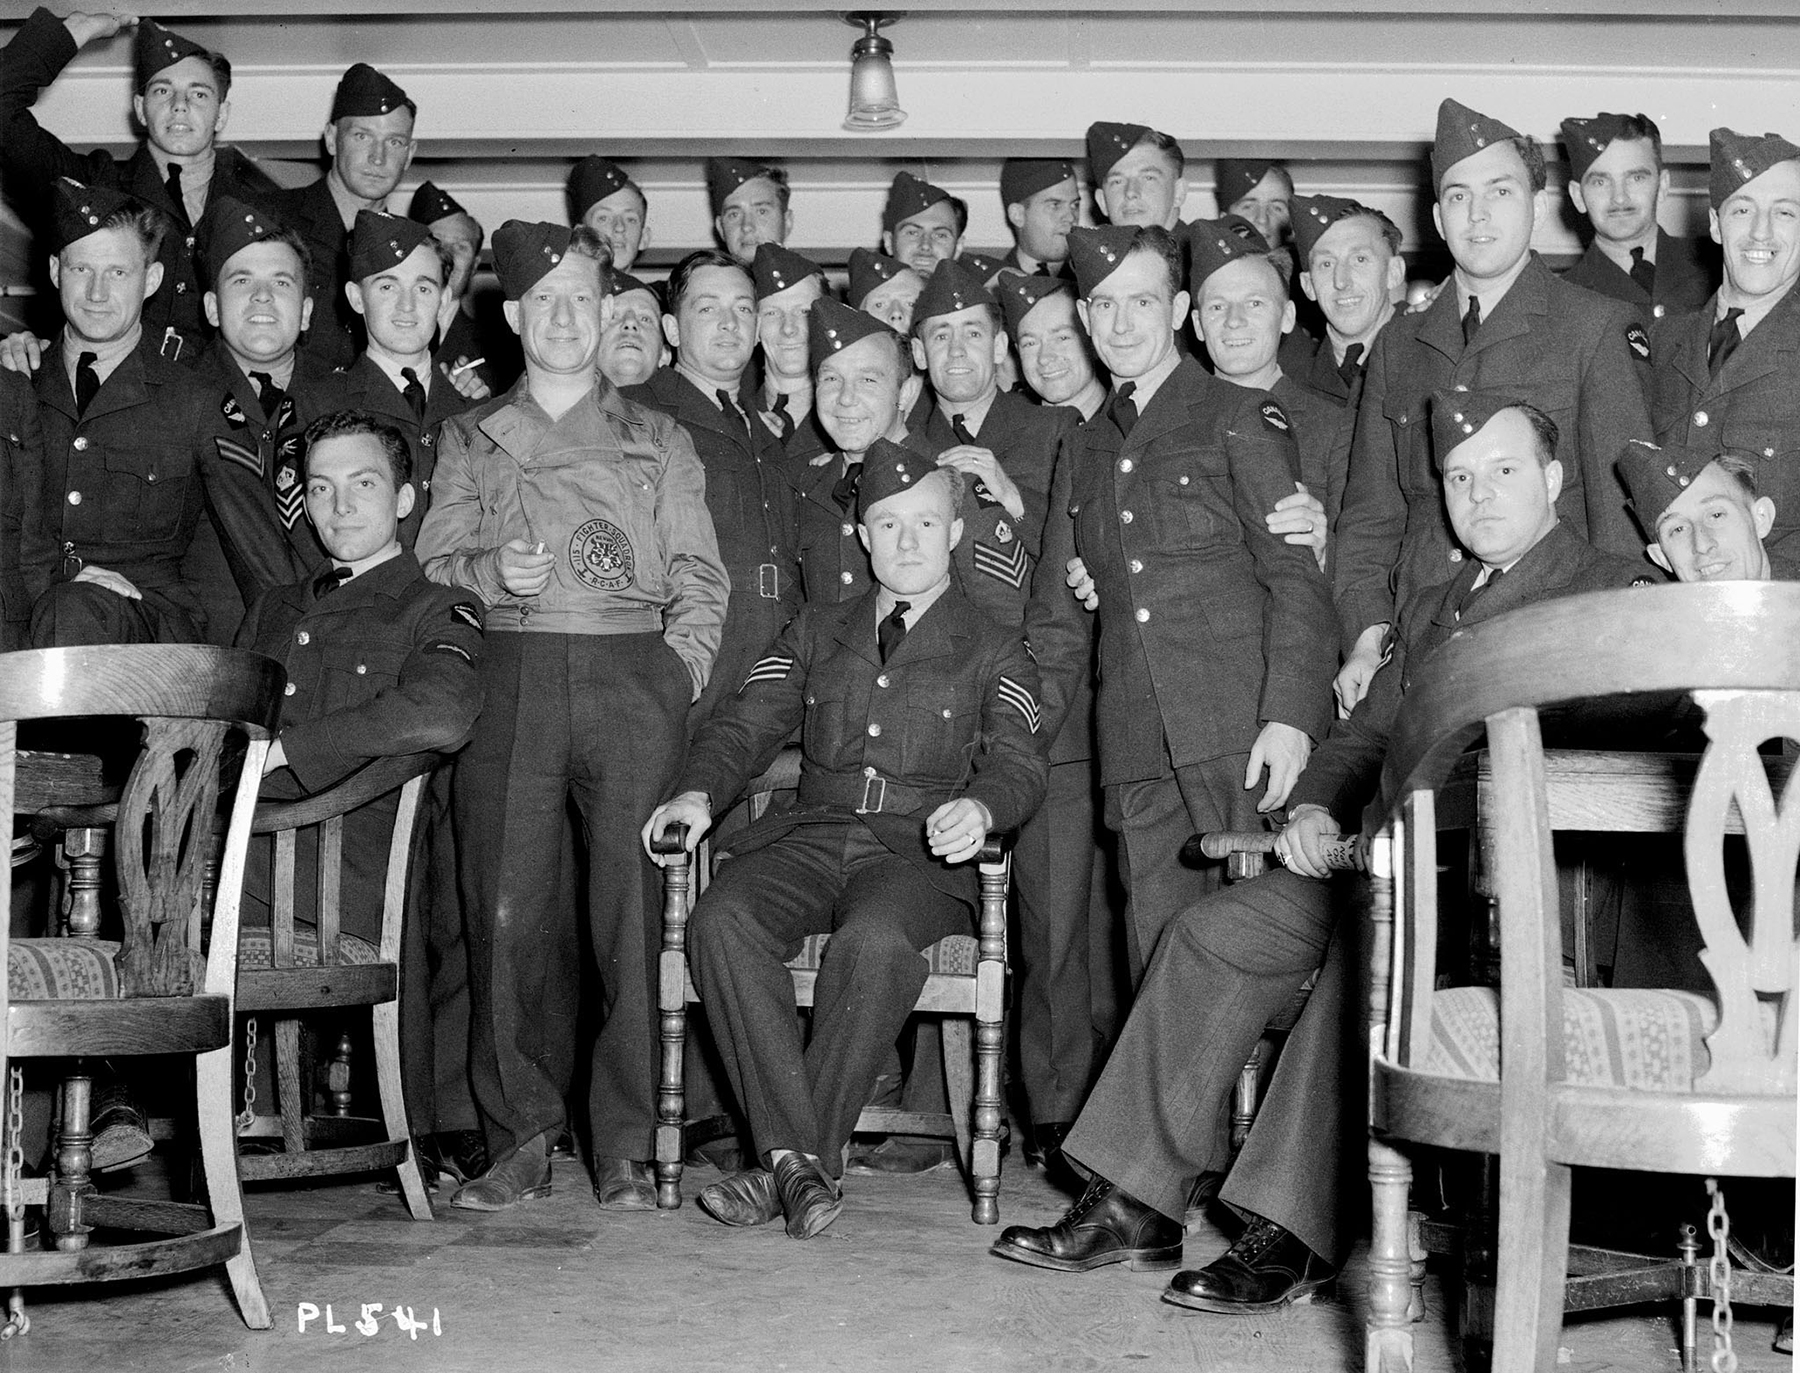 Thirty uniformed men gather for a photograph in a low-ceilinged room.